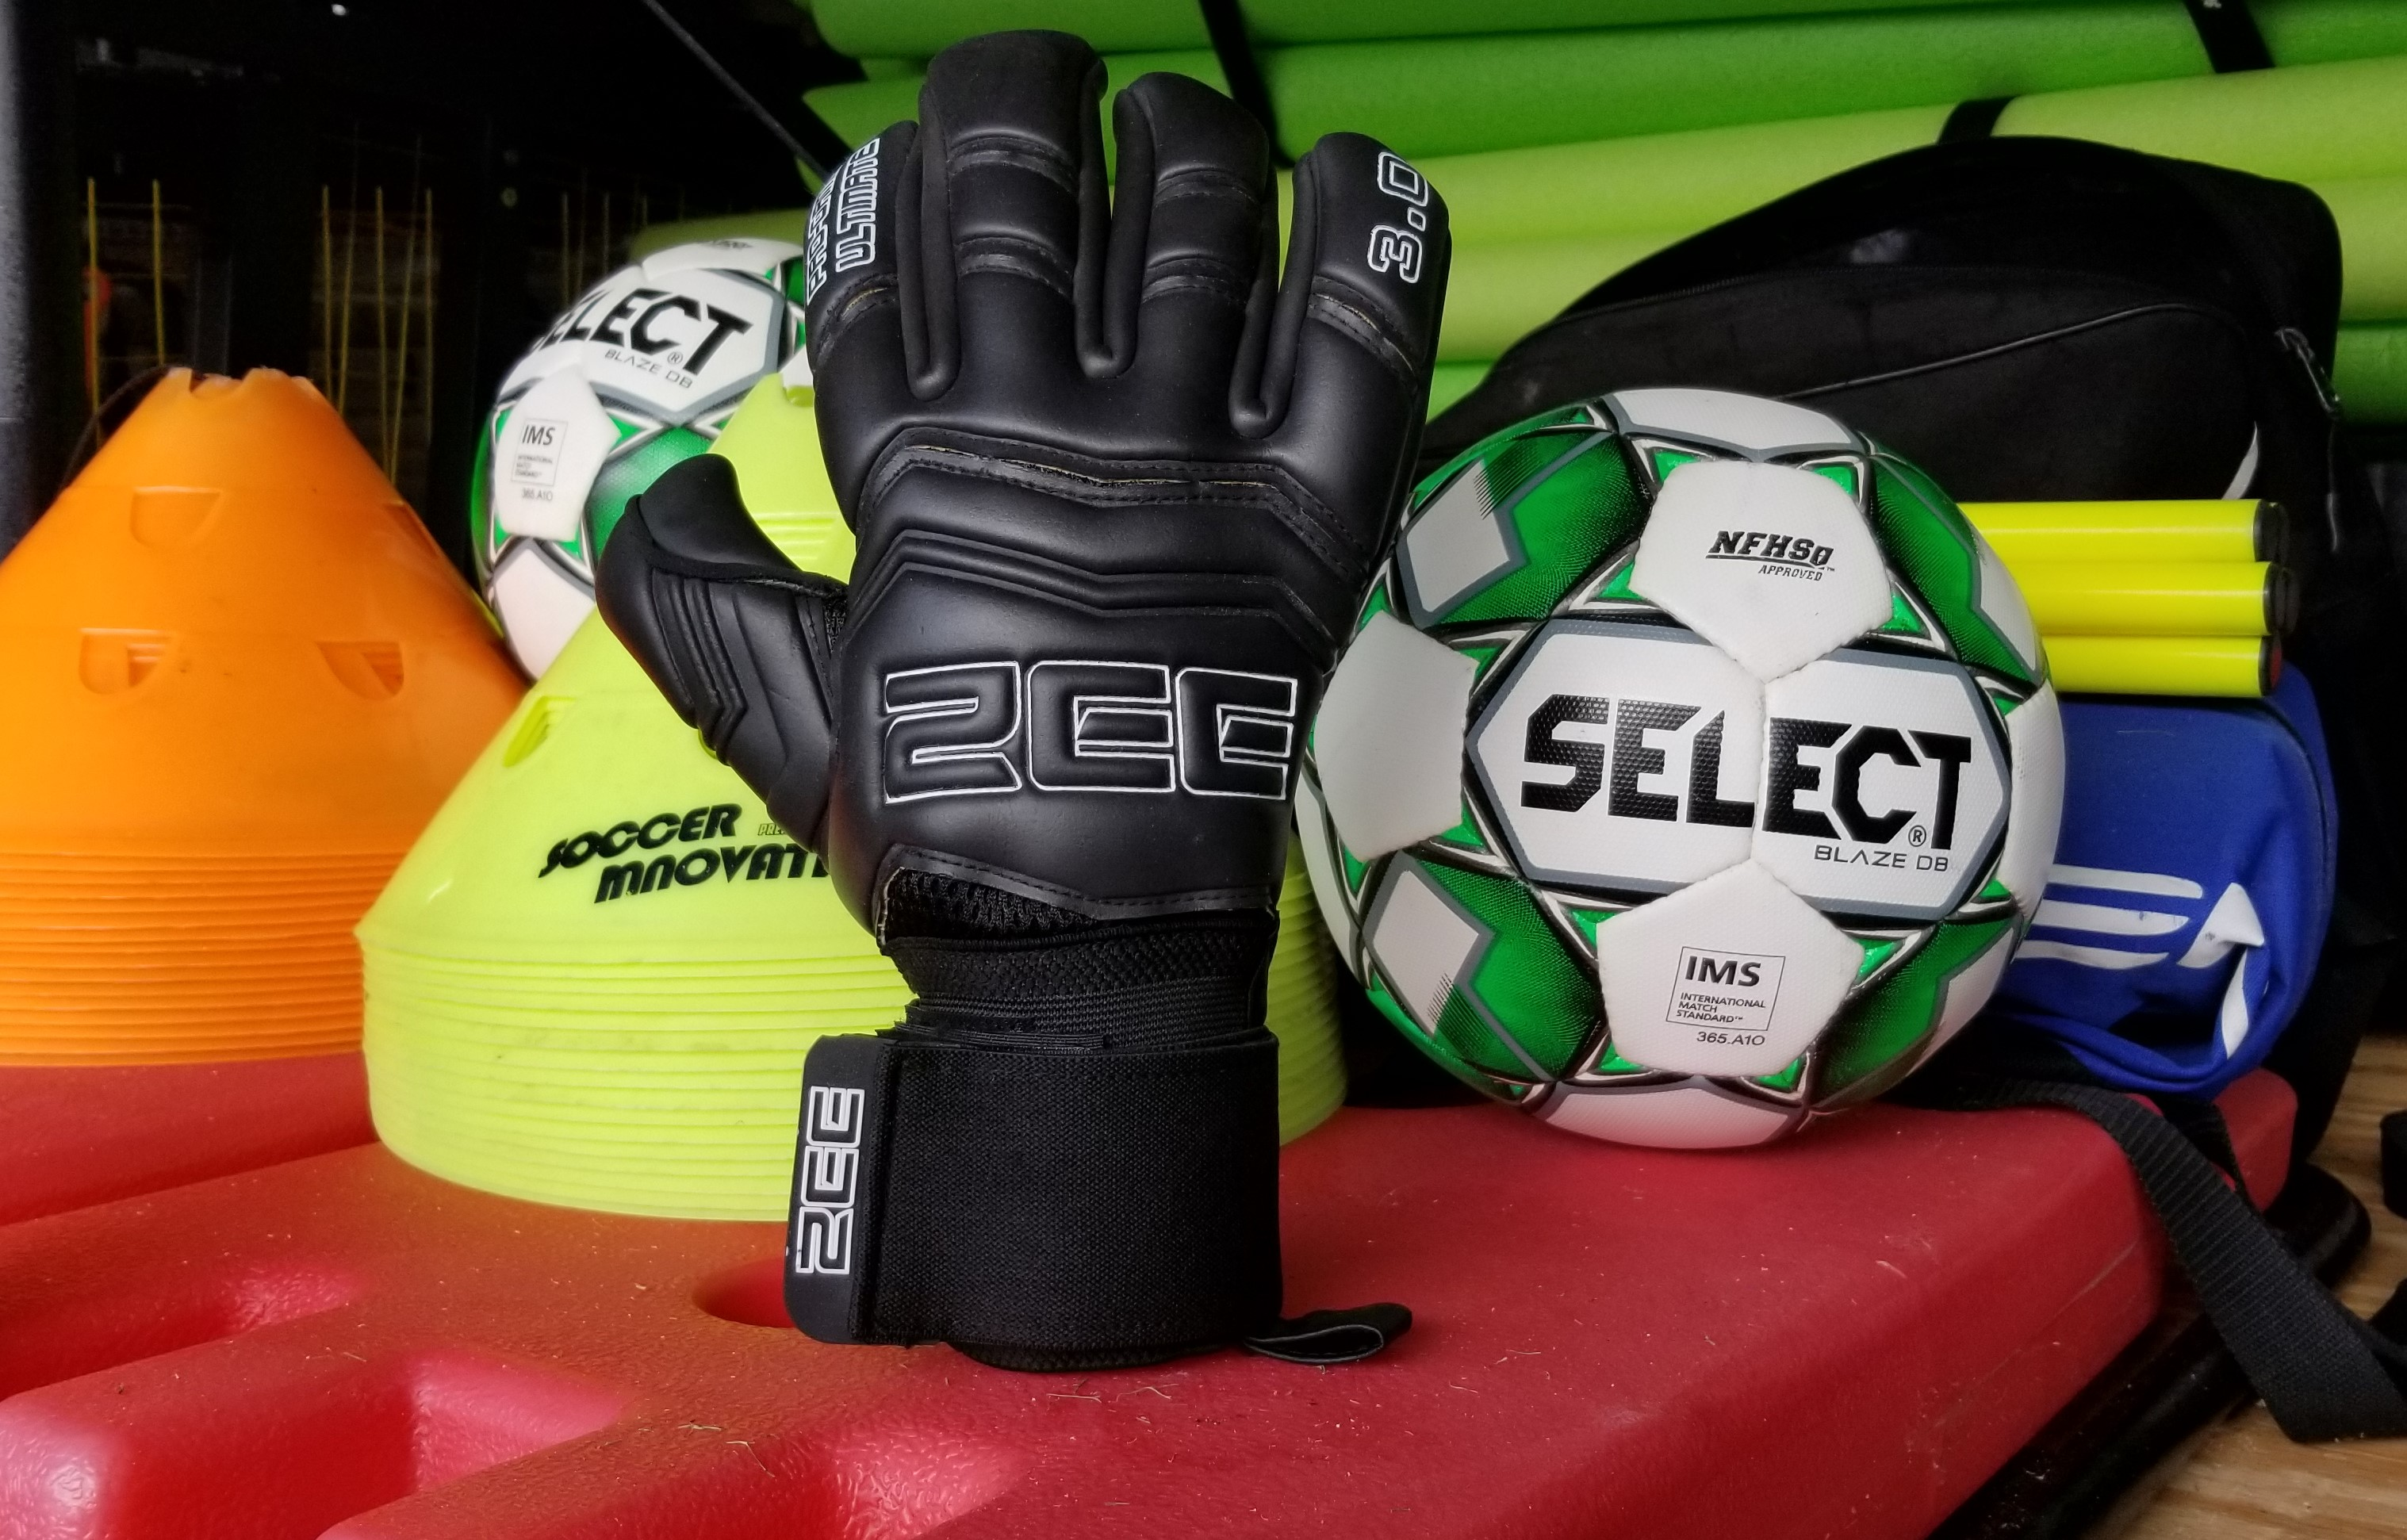 ZEE Pro-Game 3.0 Ultimate Goalkeeper Gloves